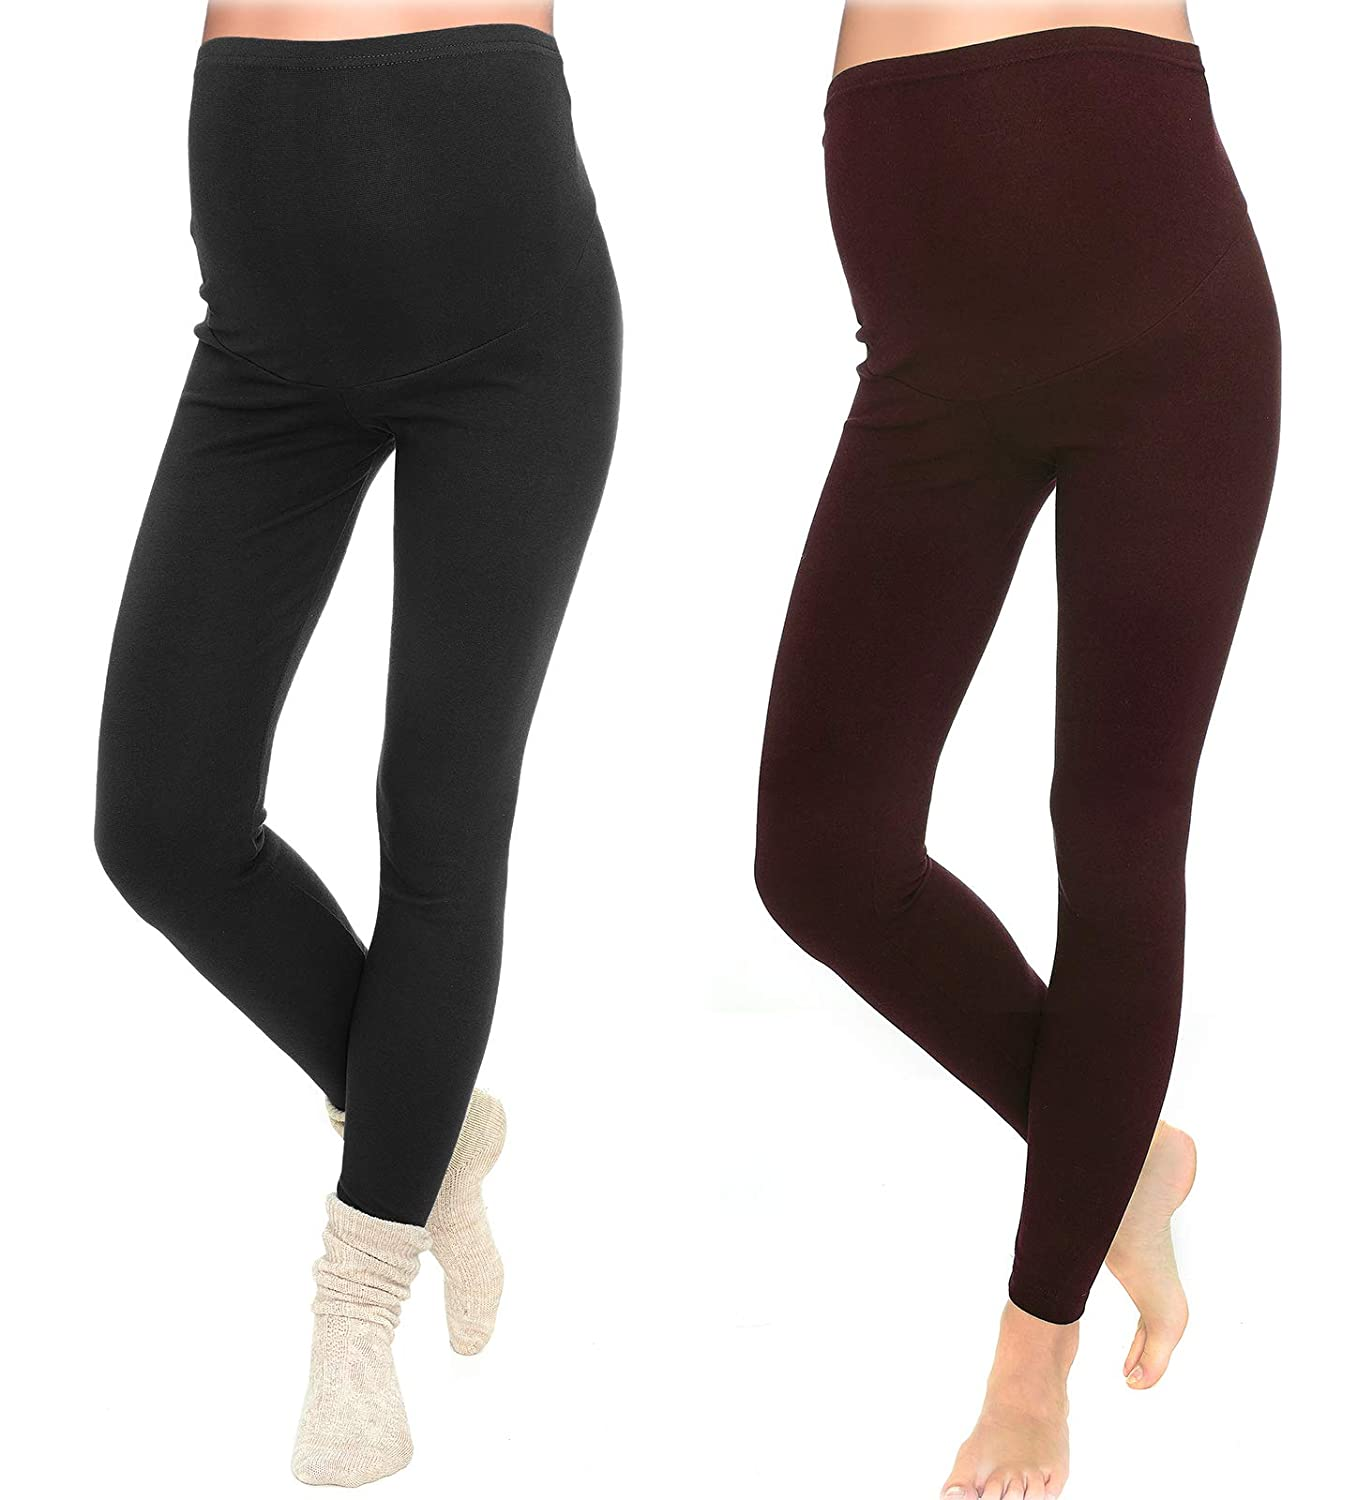 2 Set Lange warme Umstandsleggings Leggings f/ür den Winter 3006//2 MijaCulture